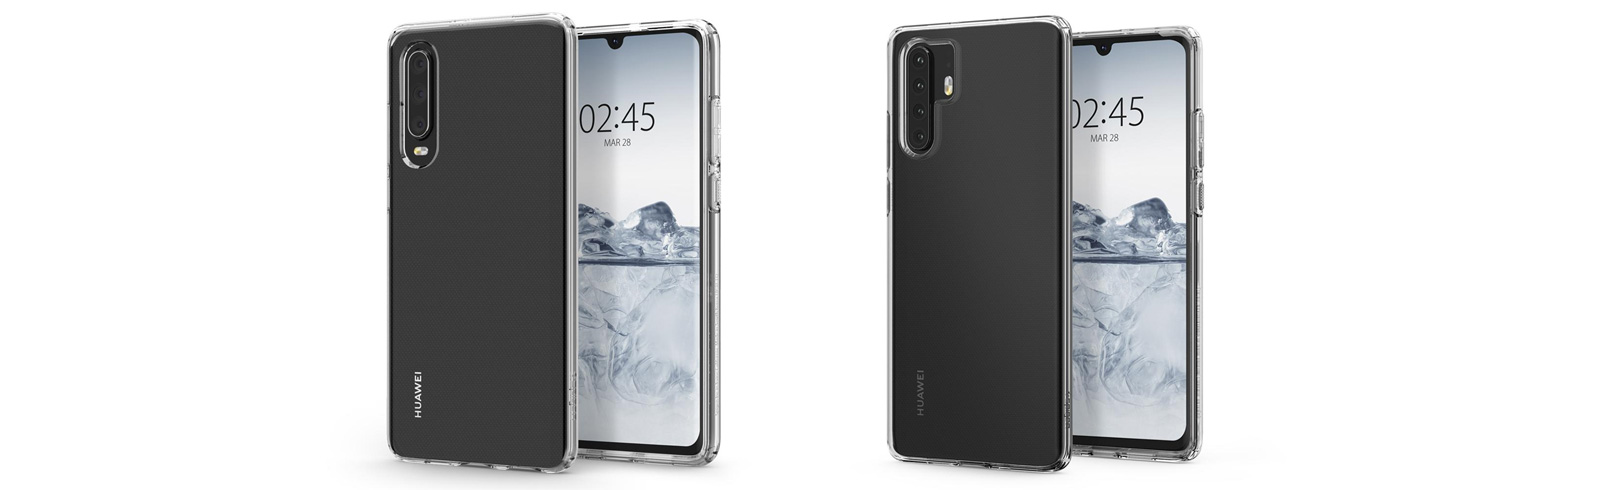 Huawei P30 and Huawei P30 Pro leak via Spigen cases renders, will be unveiled on March 28th probably